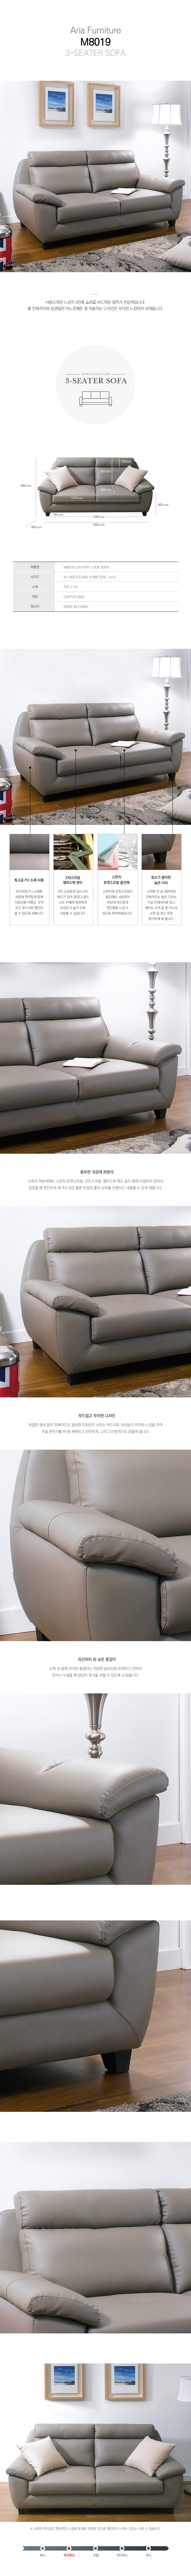 M8019 Leather-Look Sofa_180802.jpg